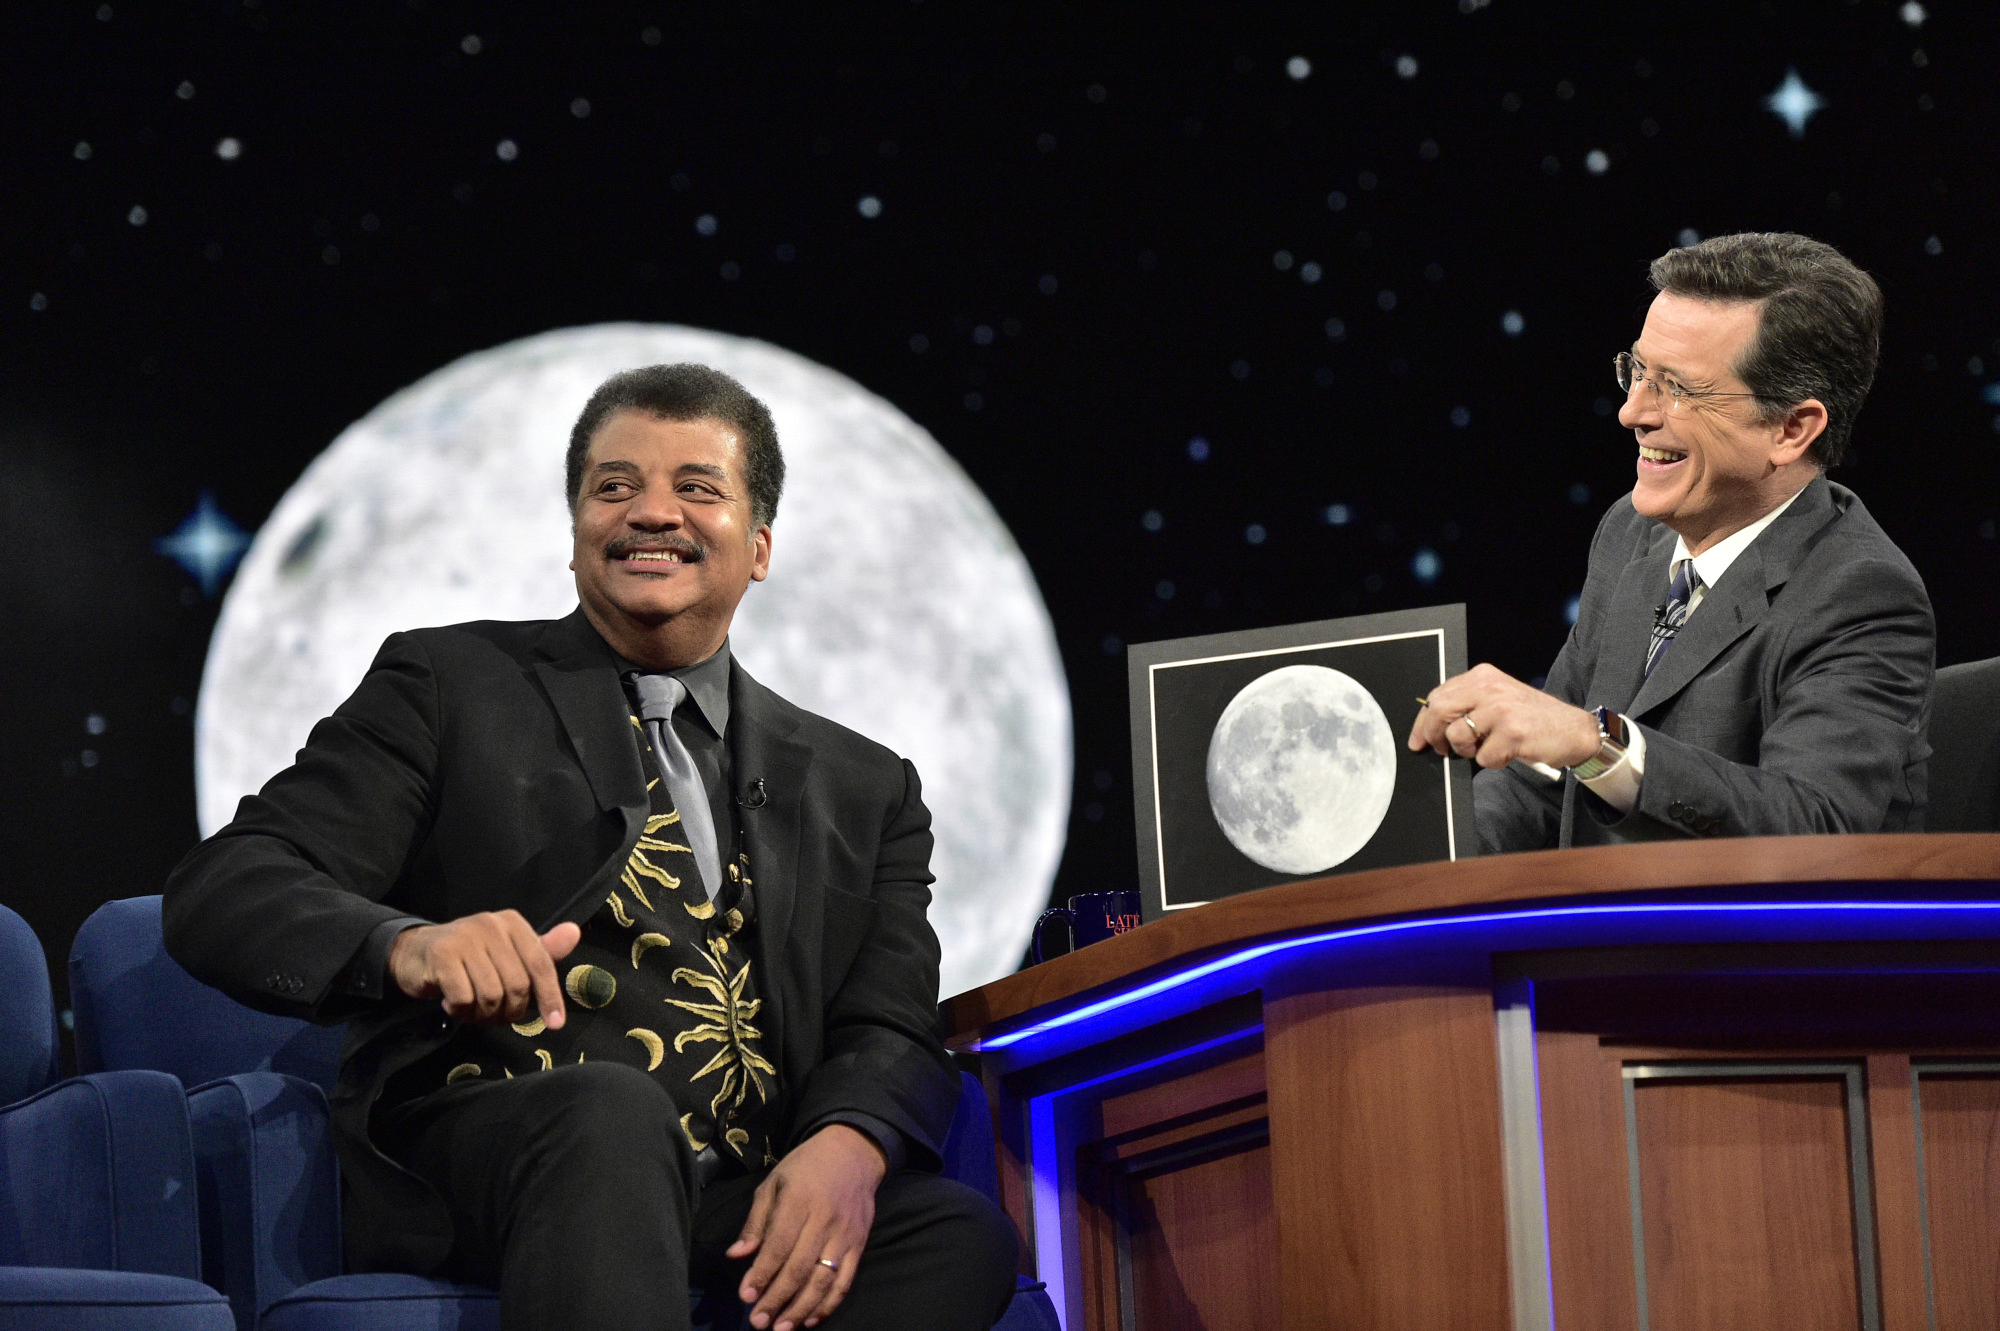 Neil deGrasse Tyson Explains The Strawberry Moon